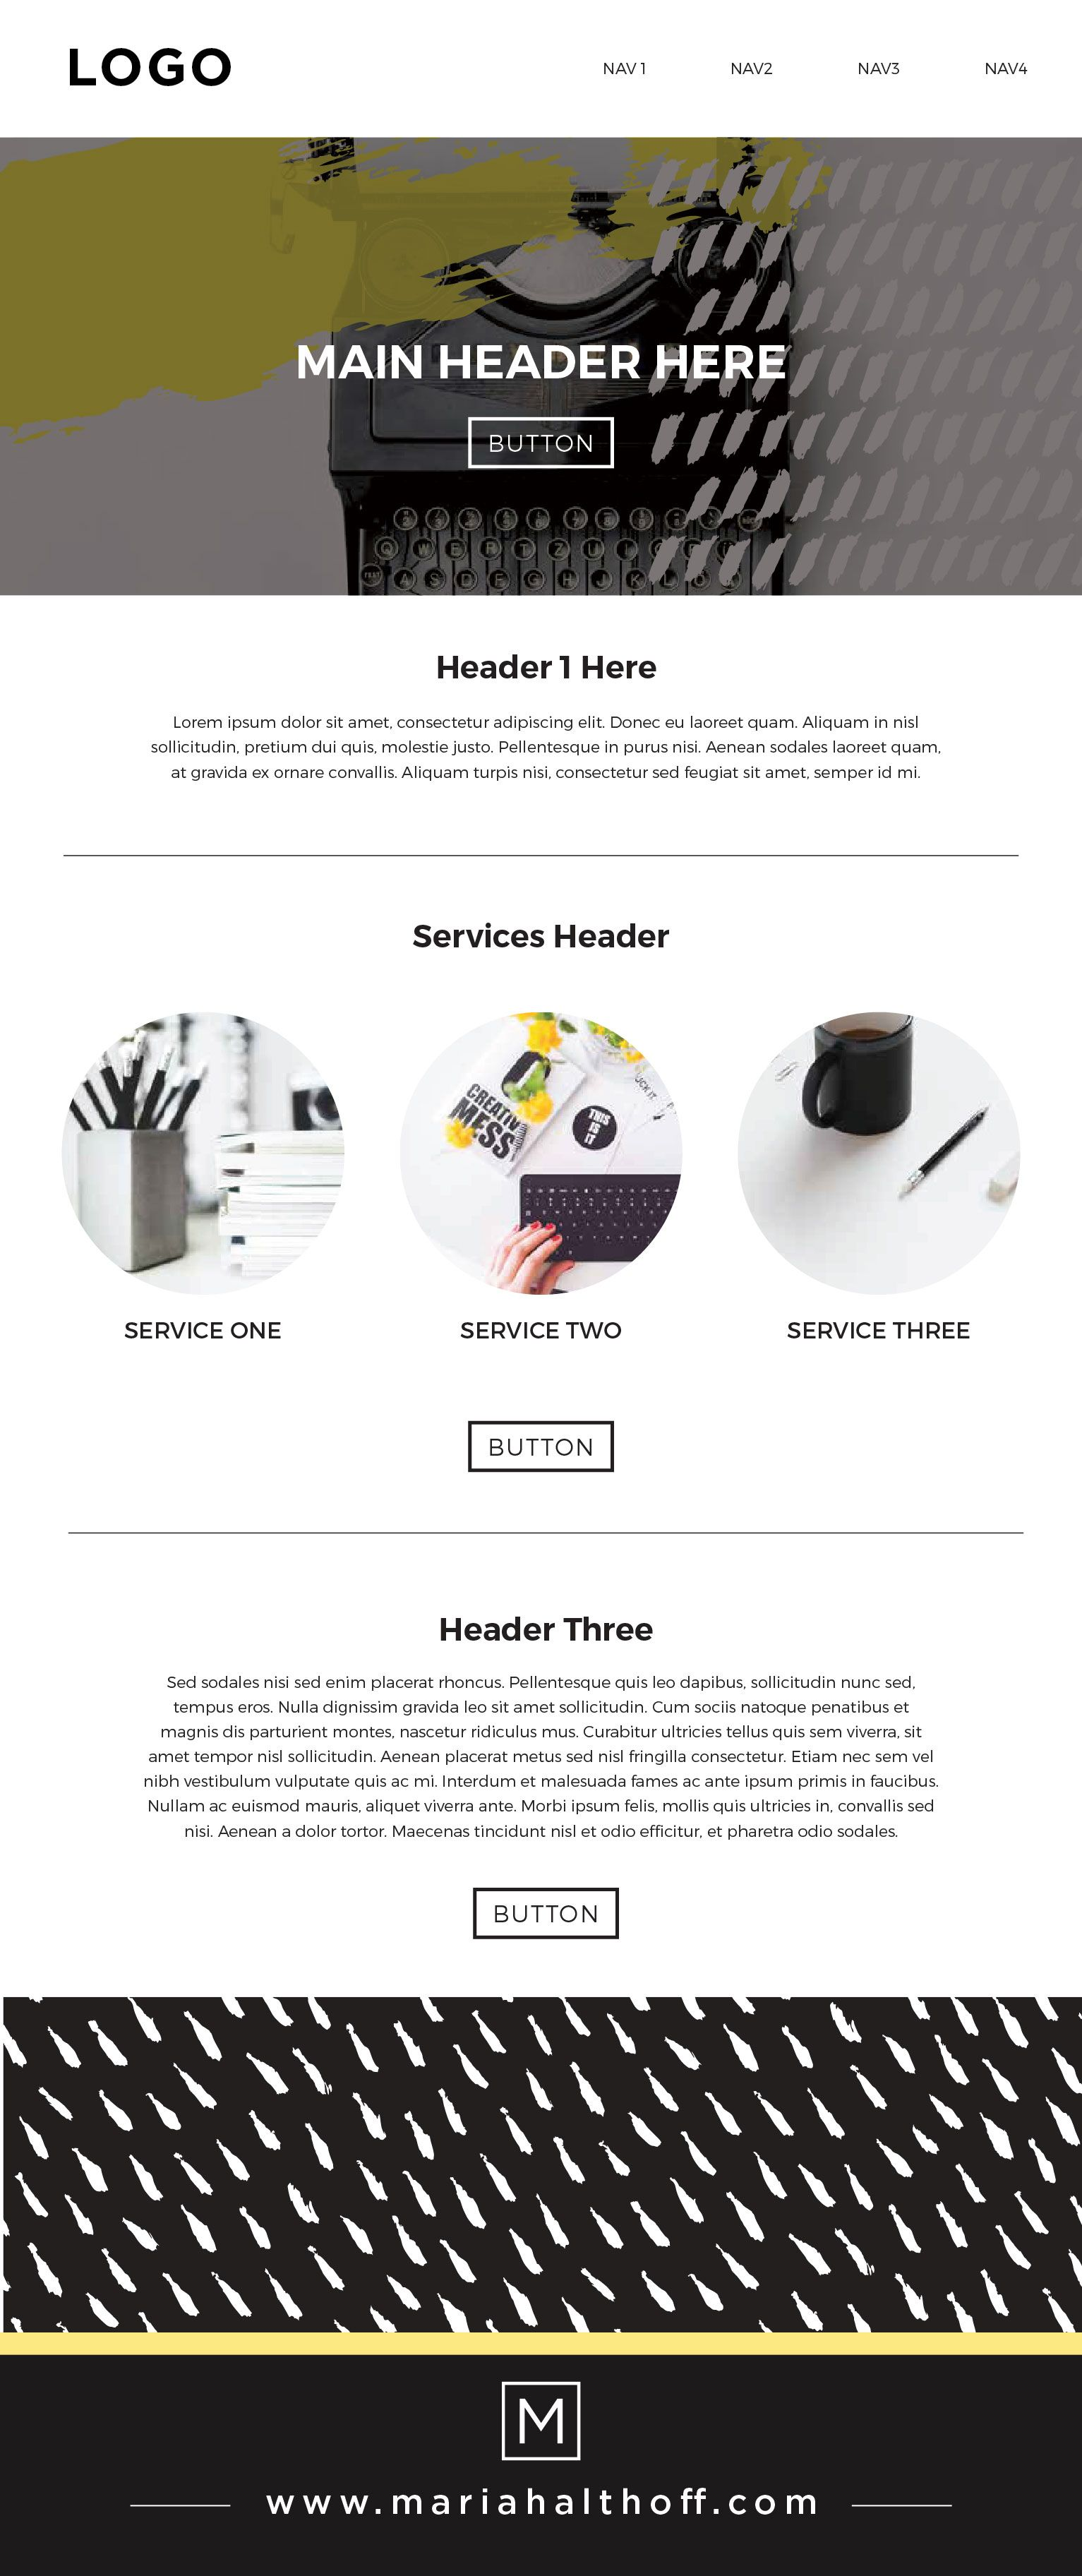 Squarespace Web Design Layout And Branding Bright Black And White Accent Yellow Paint Splatter I Squarespace Web Design Web Design Tips Web Layout Design